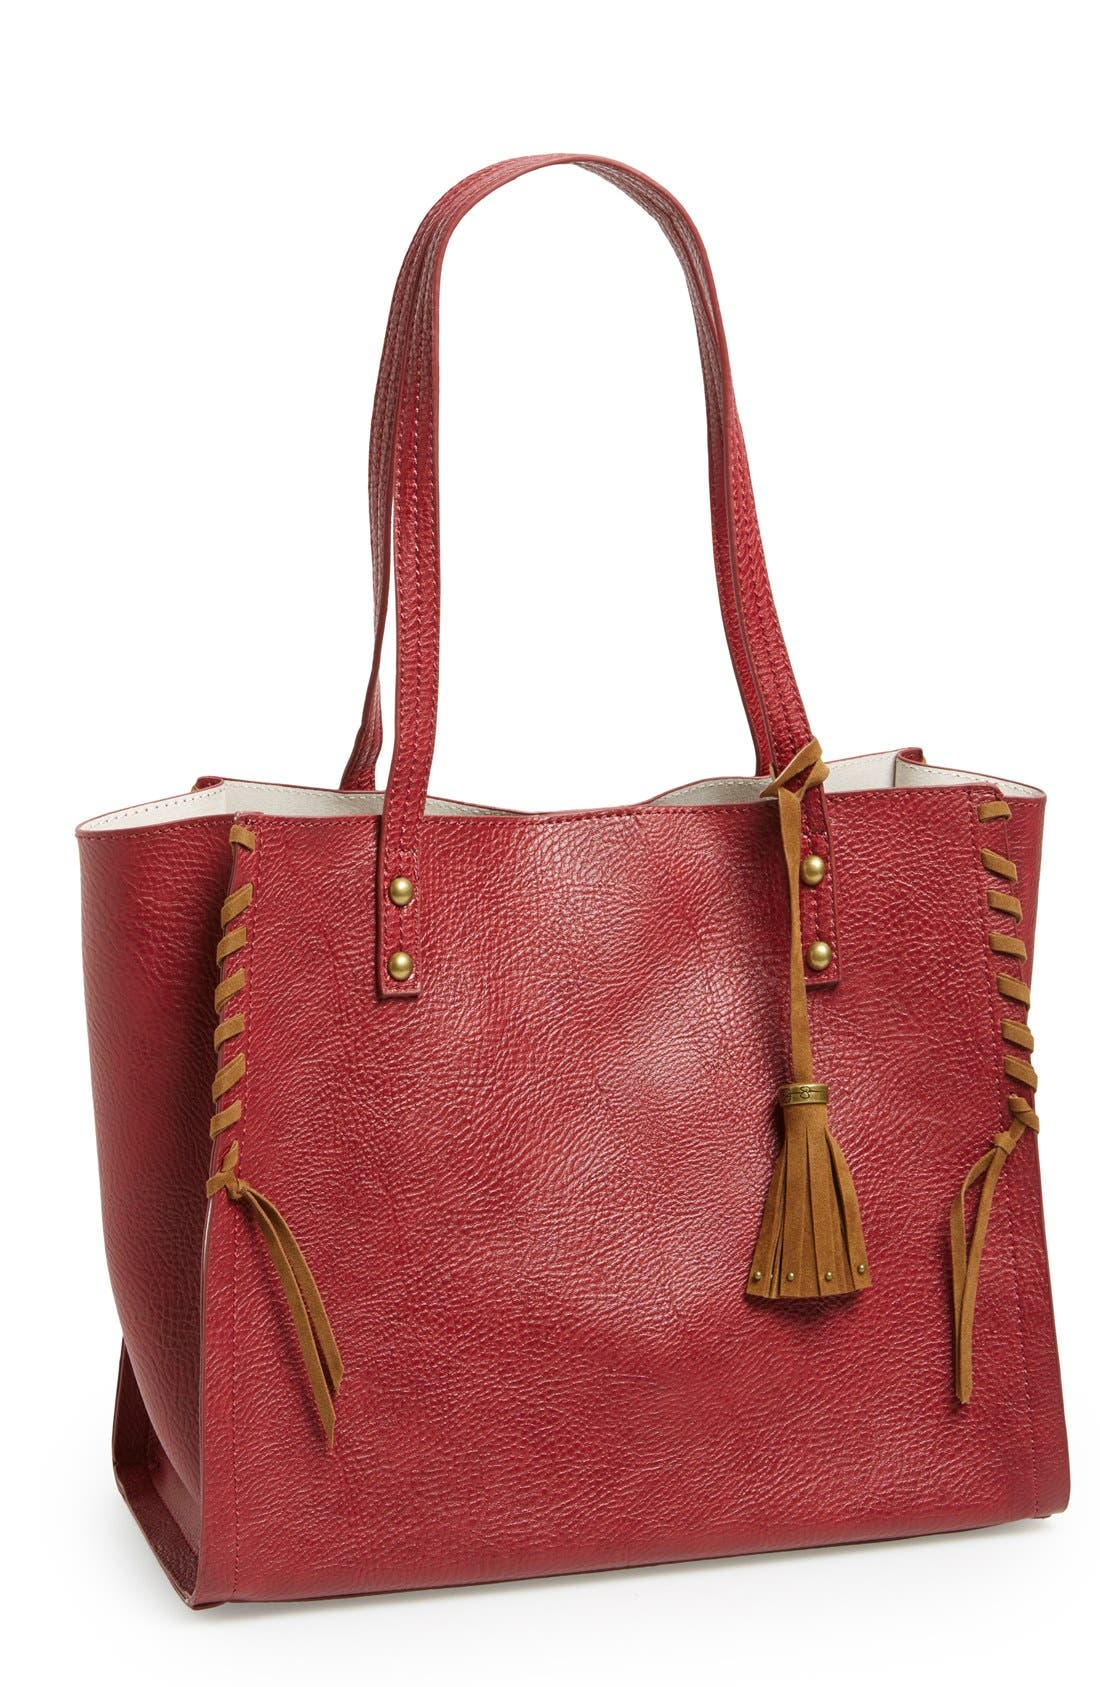 Alternate Image 1 Selected - Jessica Simpson 'Lolita' Whipstitch Tote